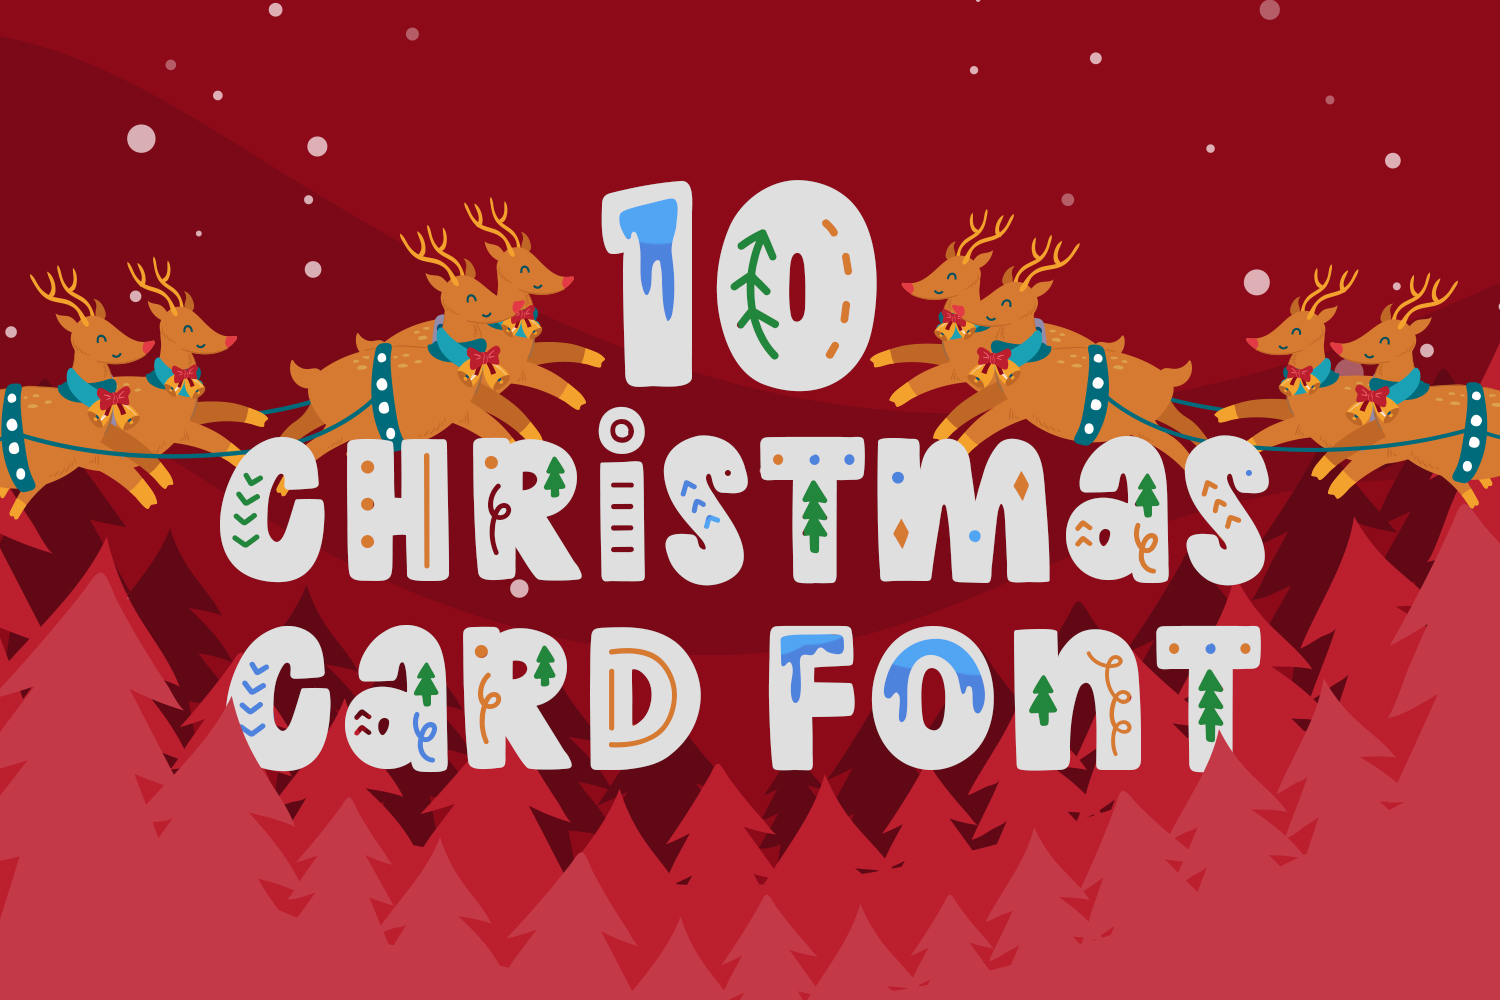 10 Christmas Card Fonts